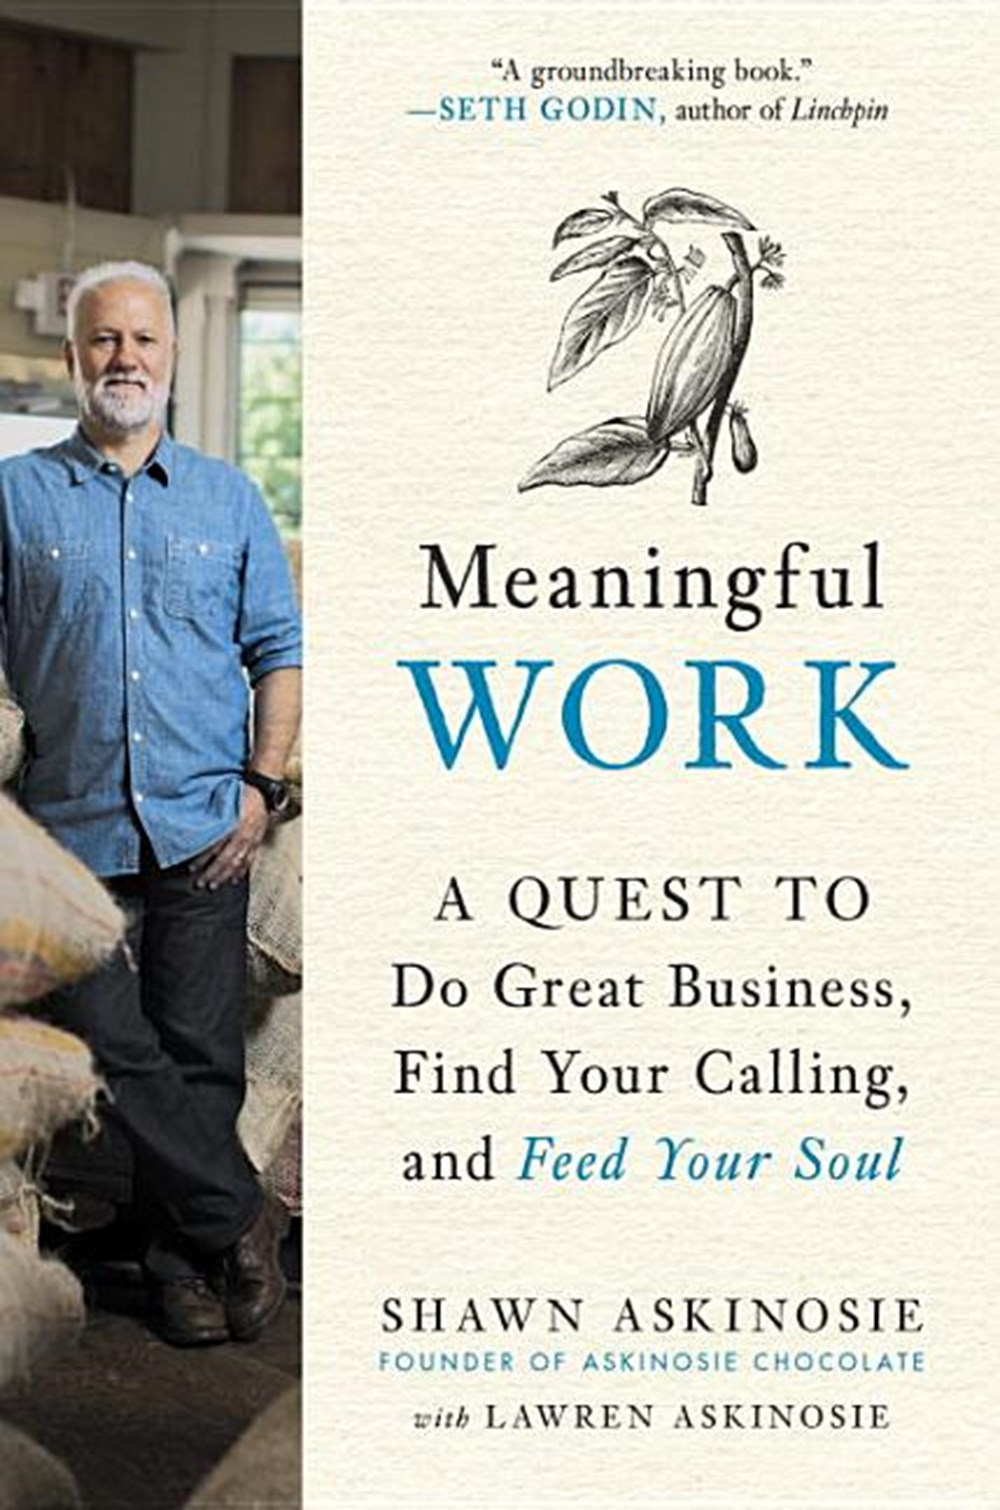 Meaningful Work A Quest to Do Great Business, Find Your Calling, and Feed Your Soul